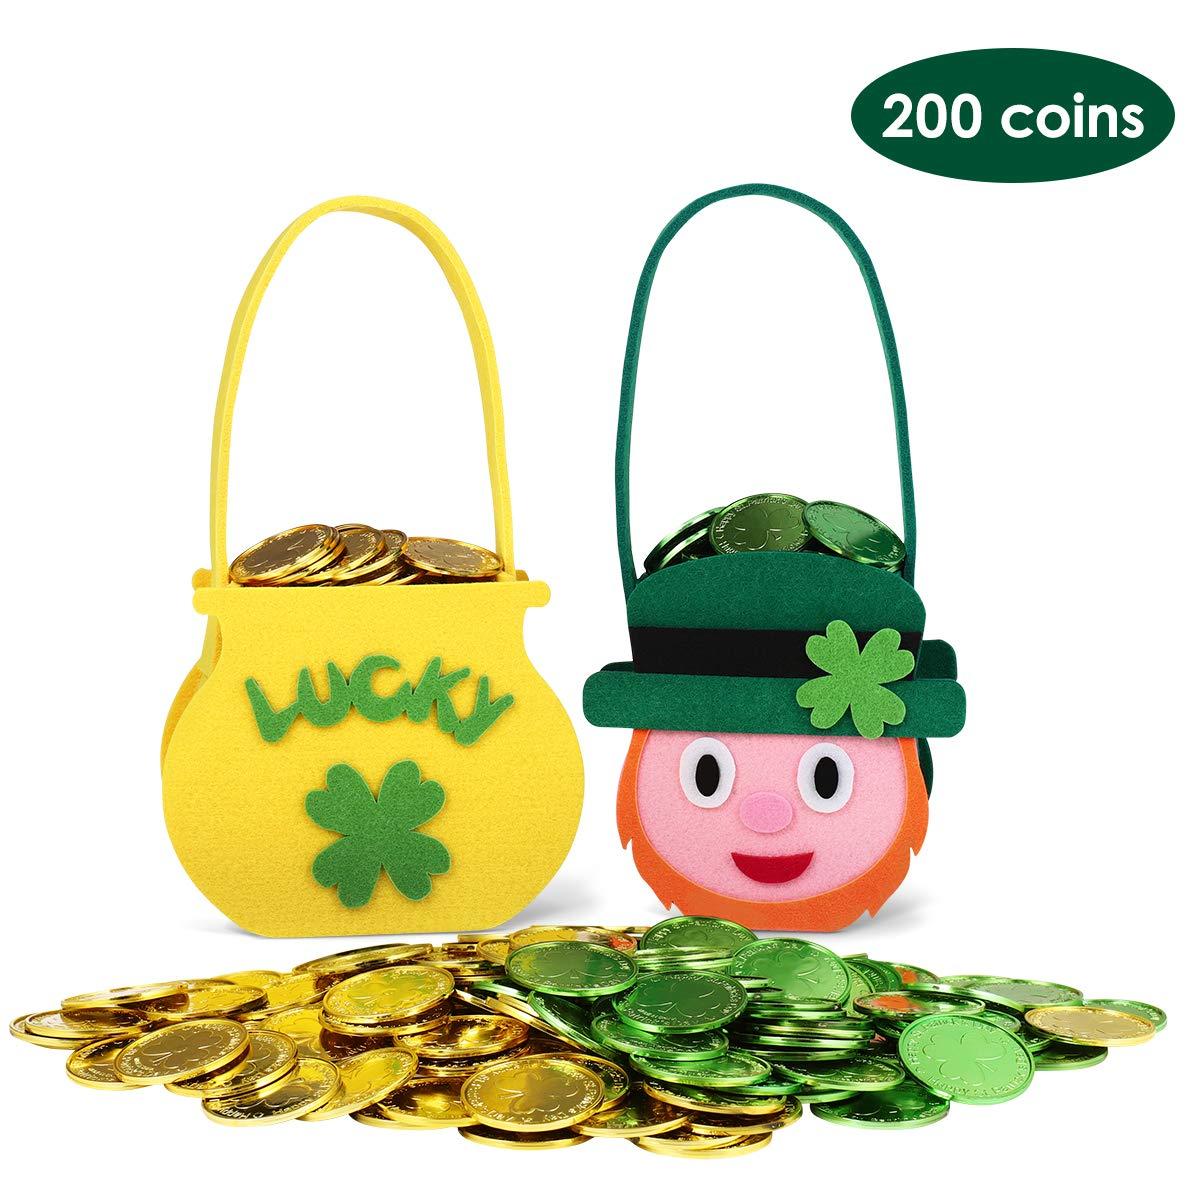 Unomor St. Patrick's Day Decorations 200 Lucky Shamrock Leprechaun Coins with 2 Felt Cauldron Pots with Handle for St Patricks Day Accessories Saint Patricks Pot of Gold Party Supplies